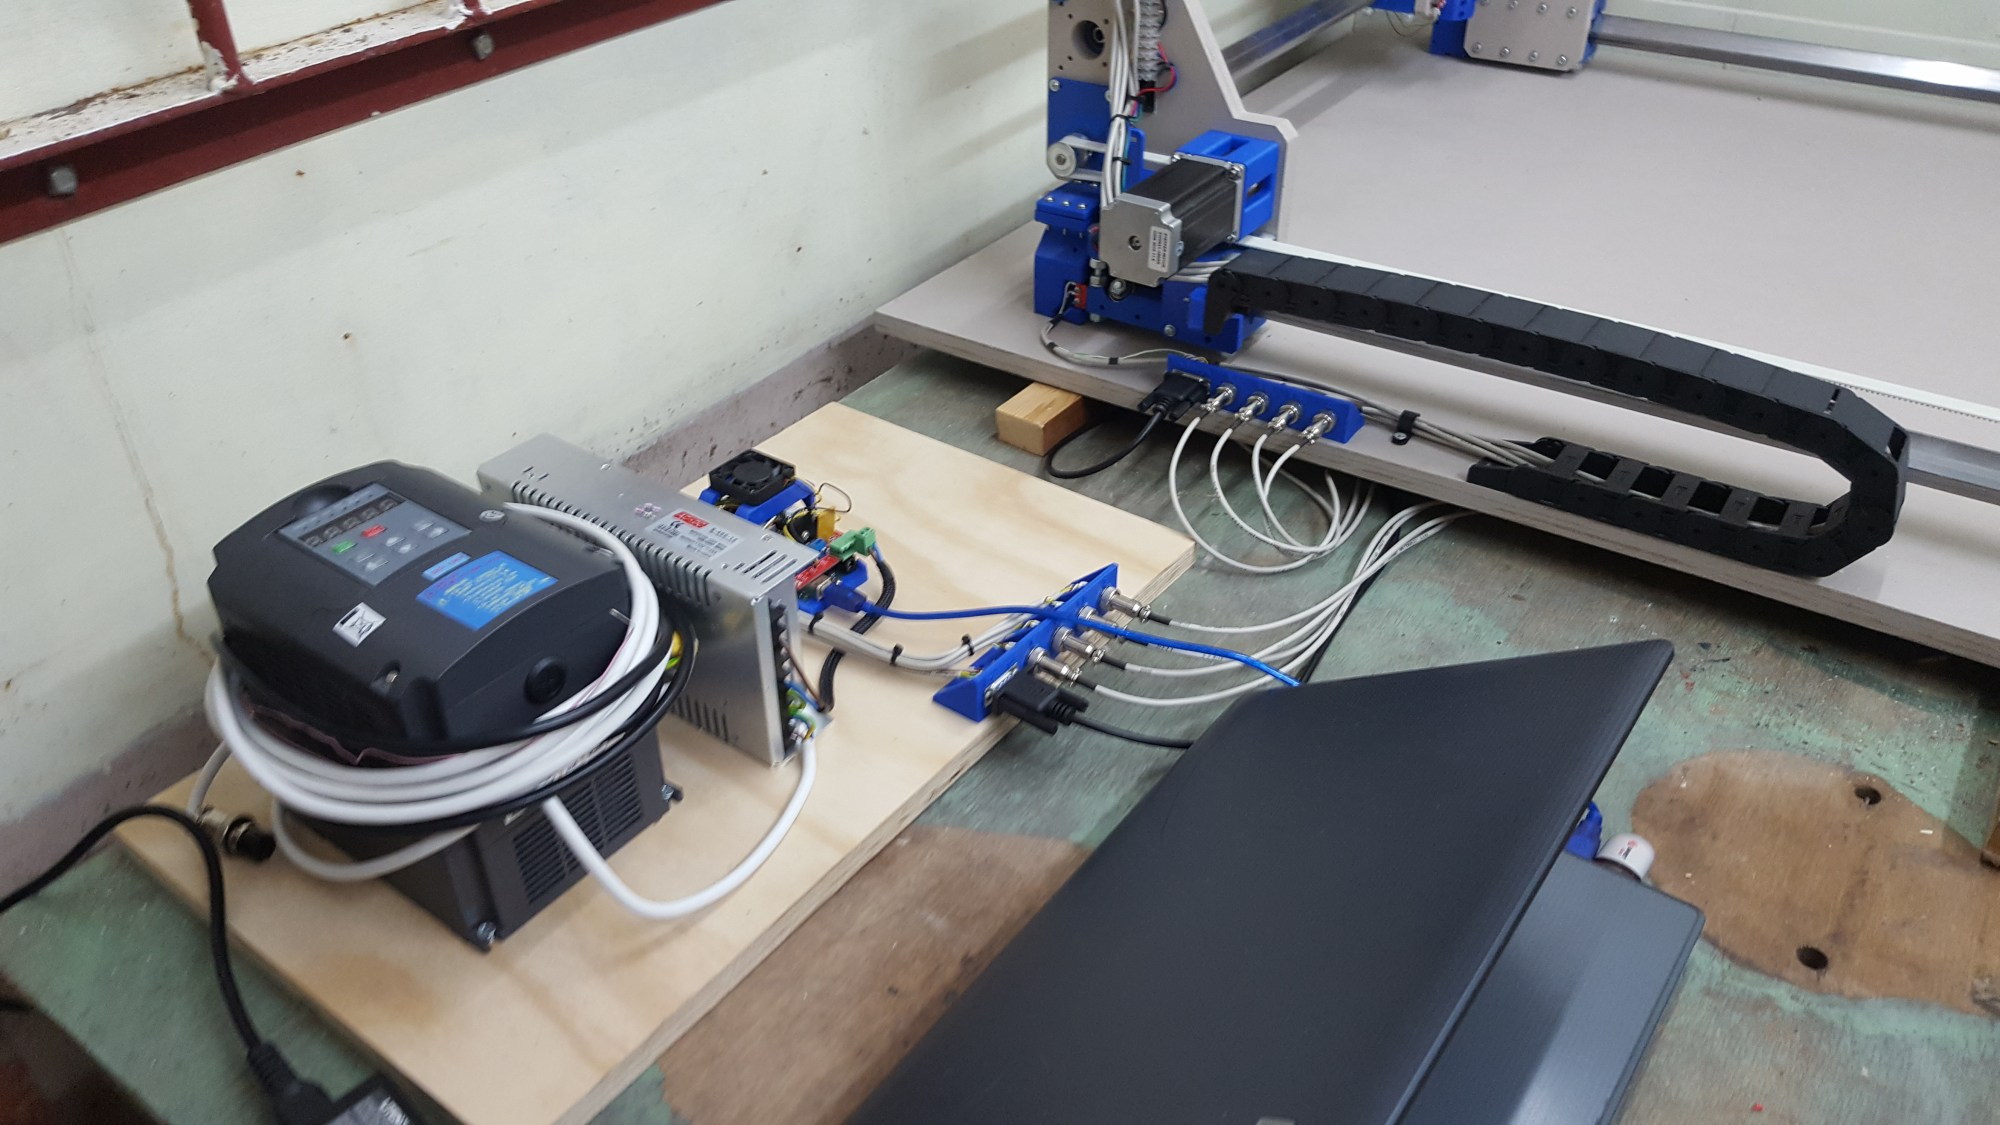 hight resolution of root 3 cnc wiring and electronics